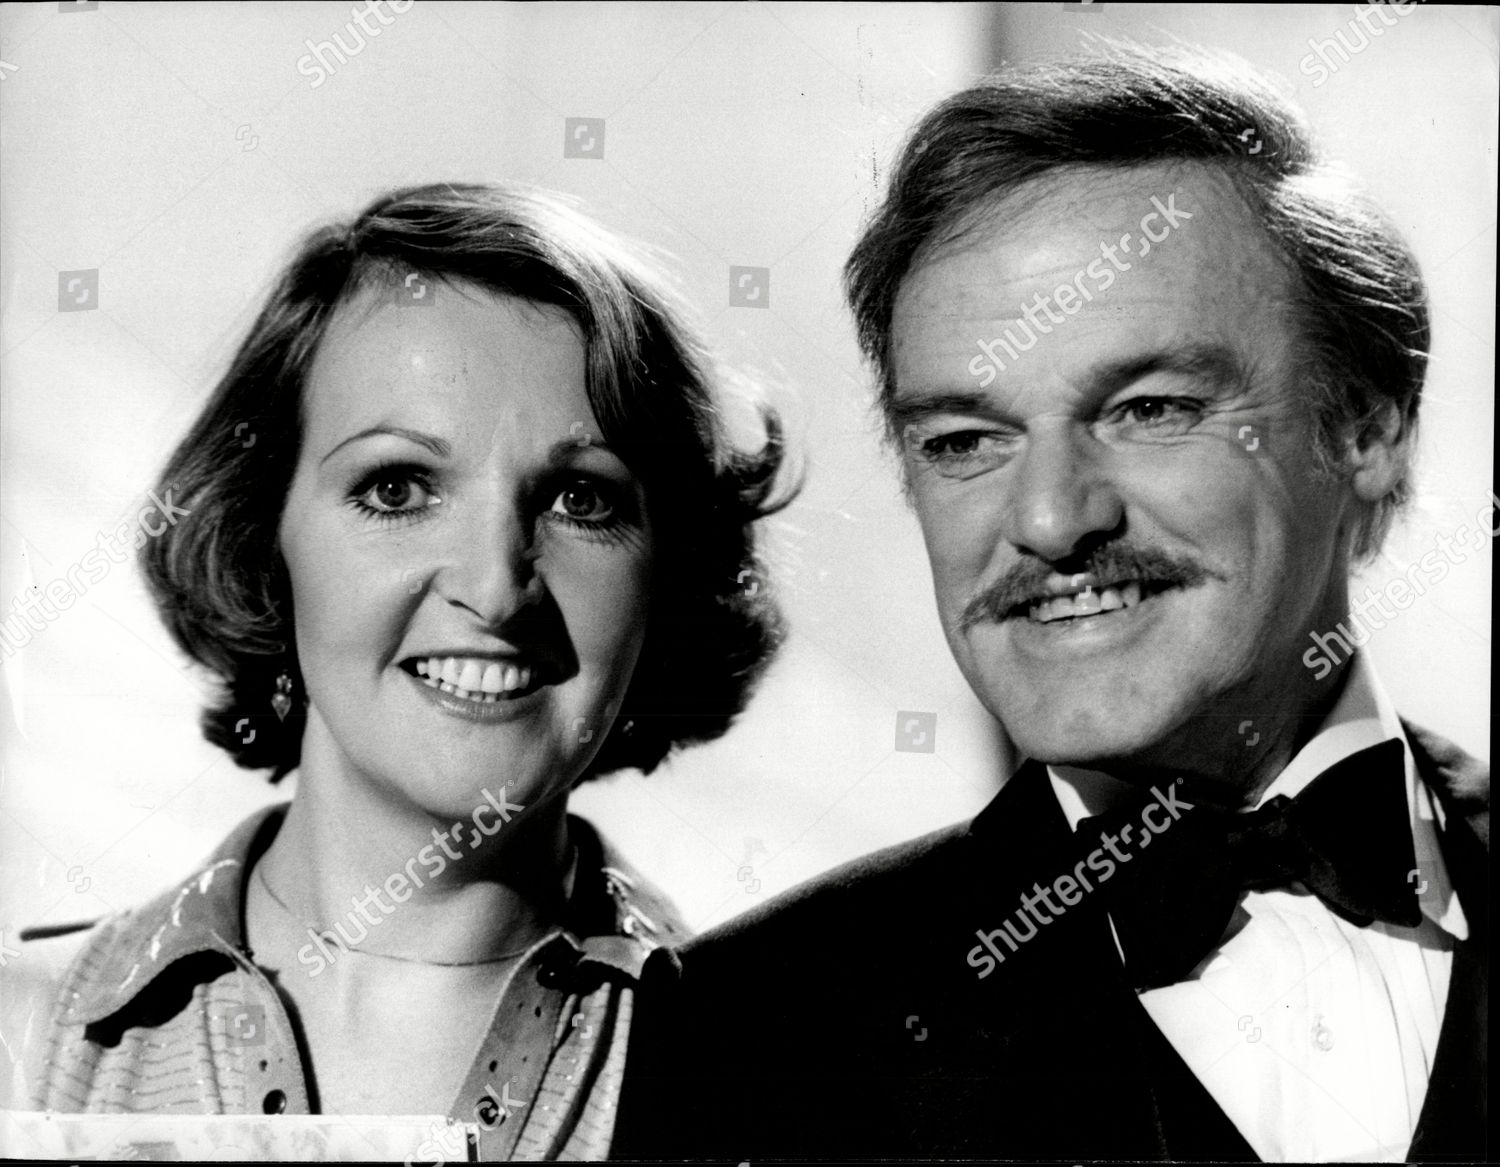 Discussion on this topic: Cathy Barry, penelope-keith/